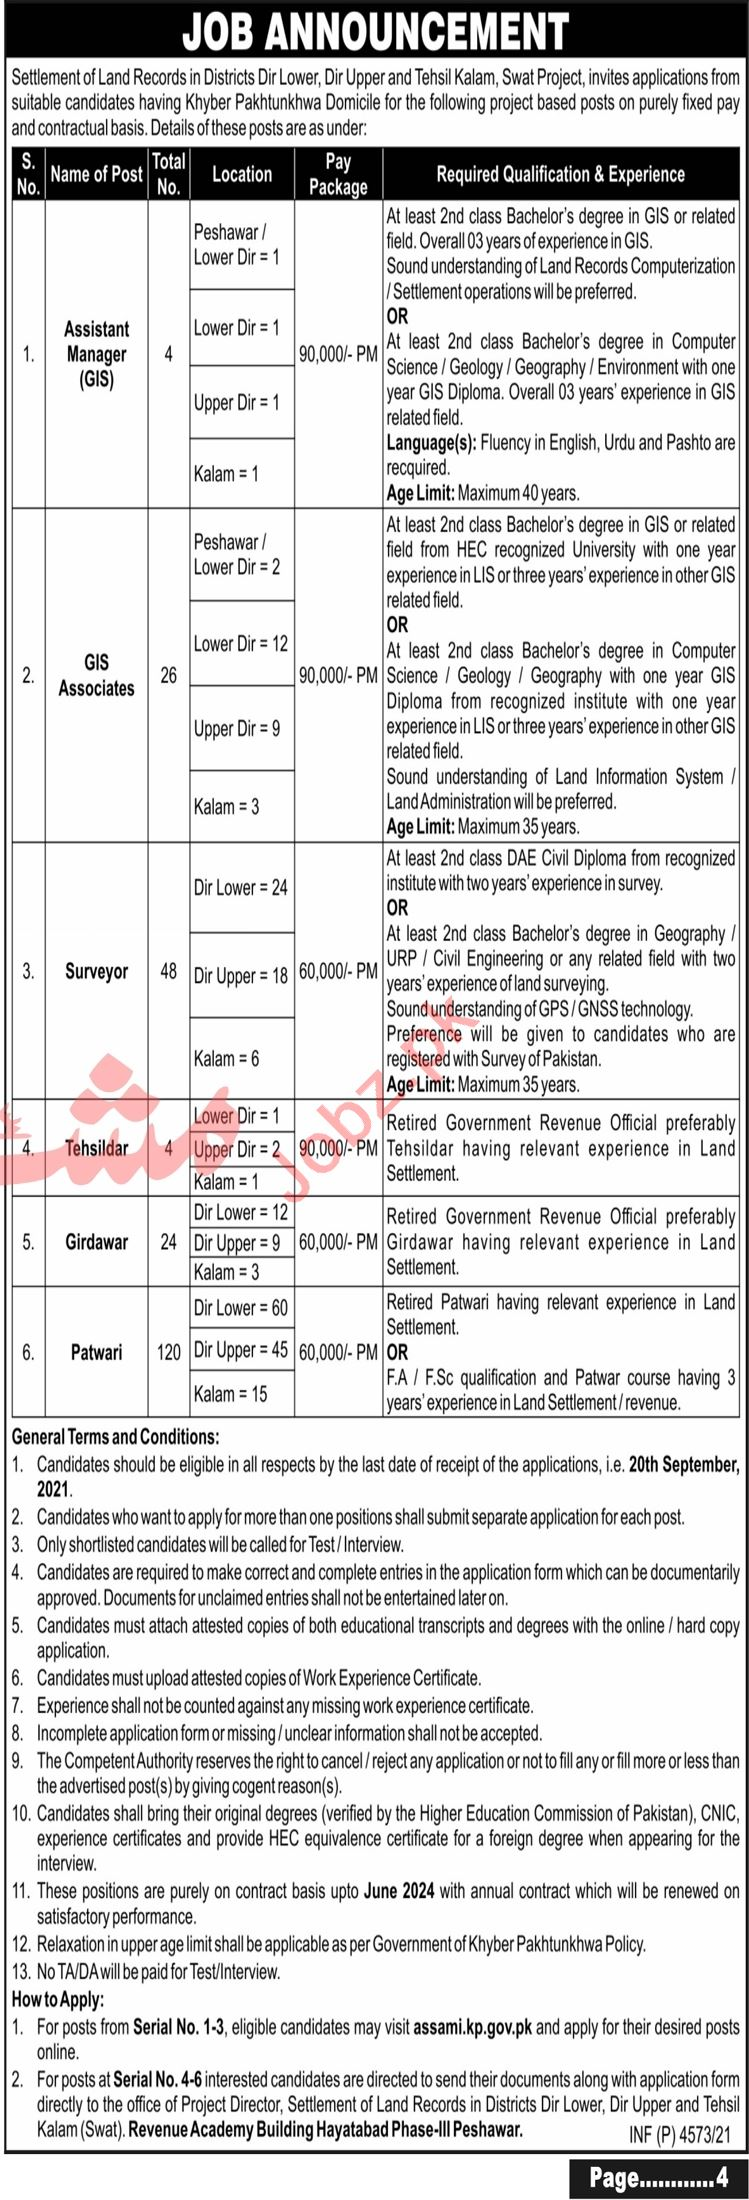 Settlement of Land Records Jobs 2021 For Management Staff